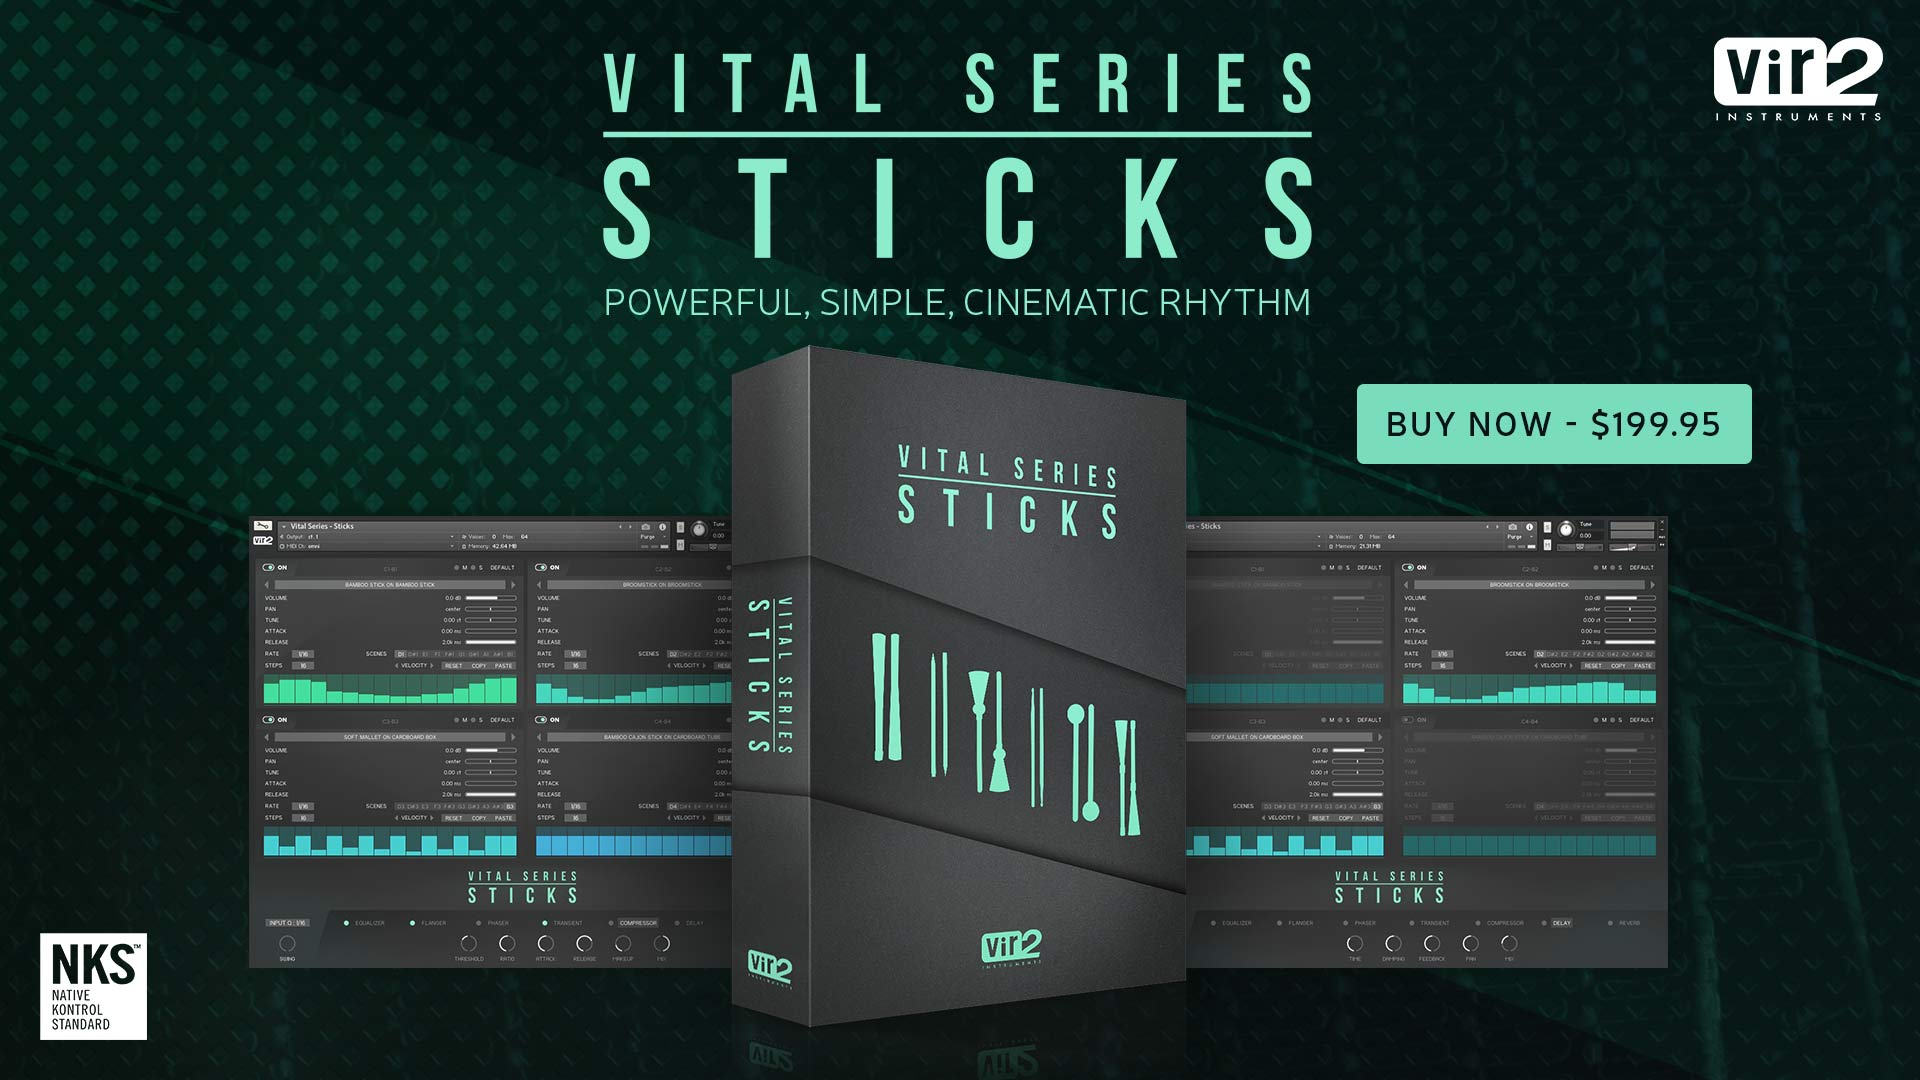 Vir2 Vital Series: Sticks